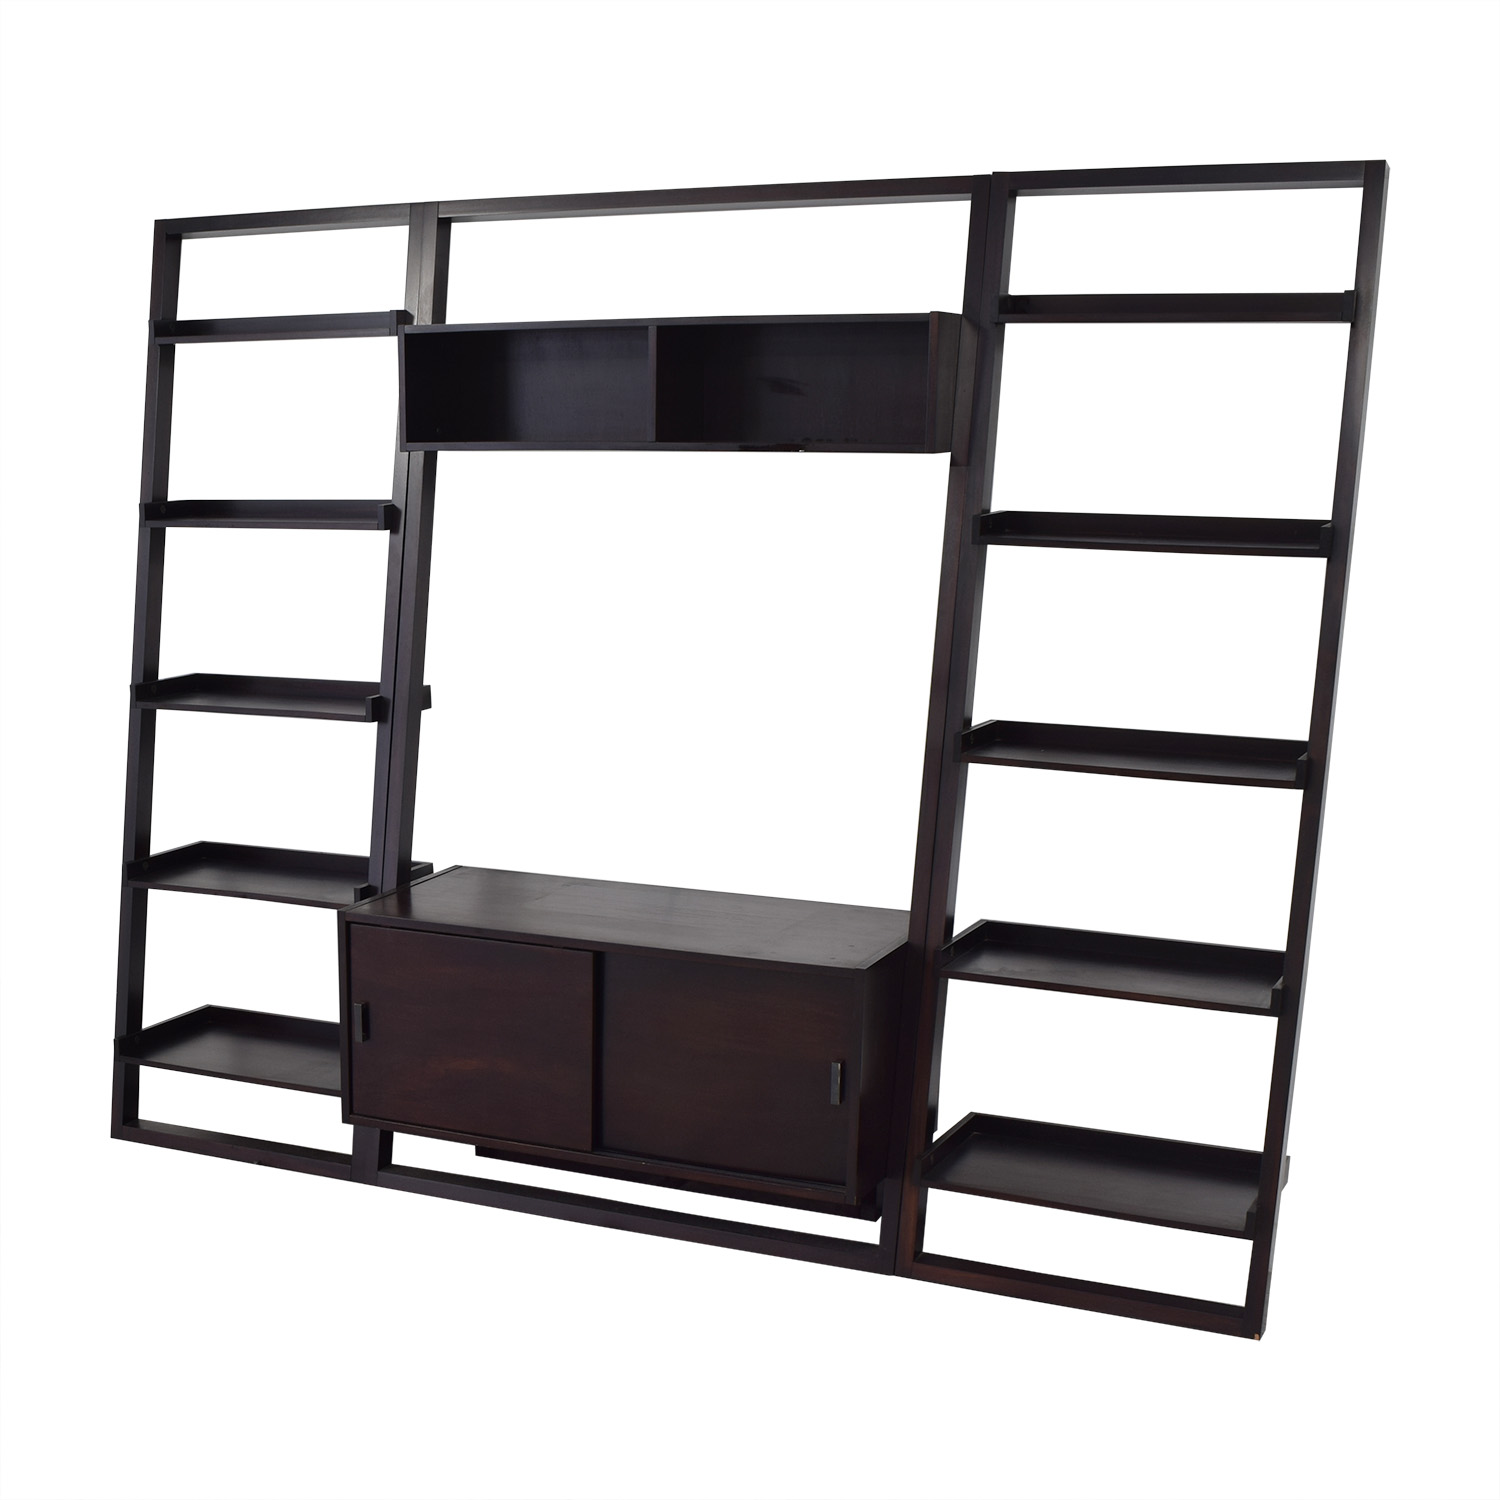 Crate & Barrel Crate & Barrel Sawyer Media Unit and Bookcases for sale